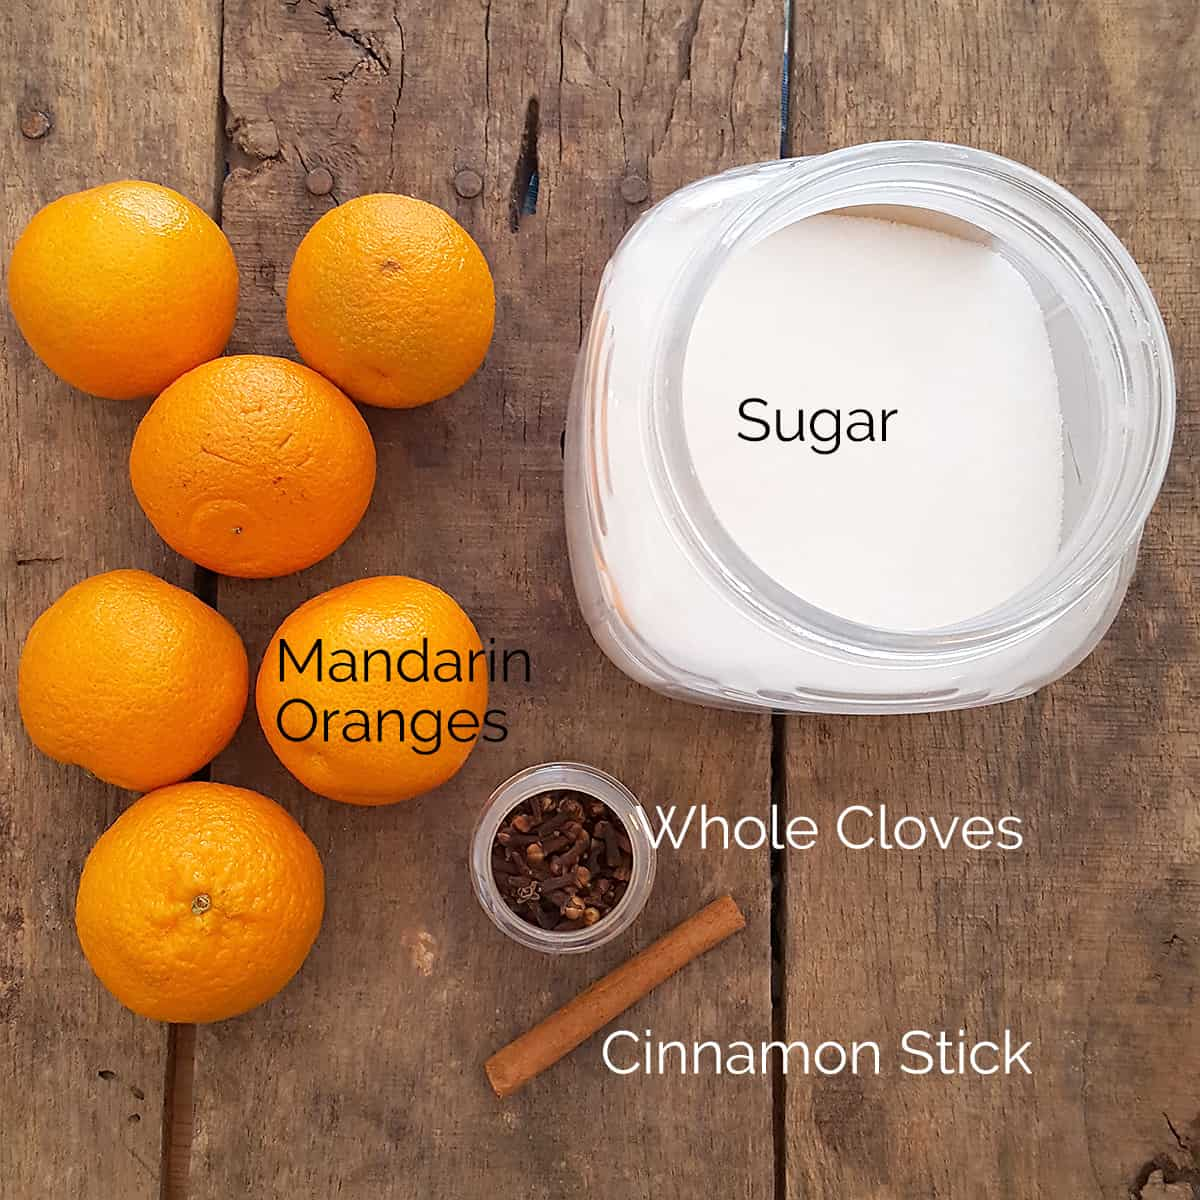 Ingredients needed for the recipe: mandarin oranges, sugar, whole cloves, and cinnamon stick (water not pictured)